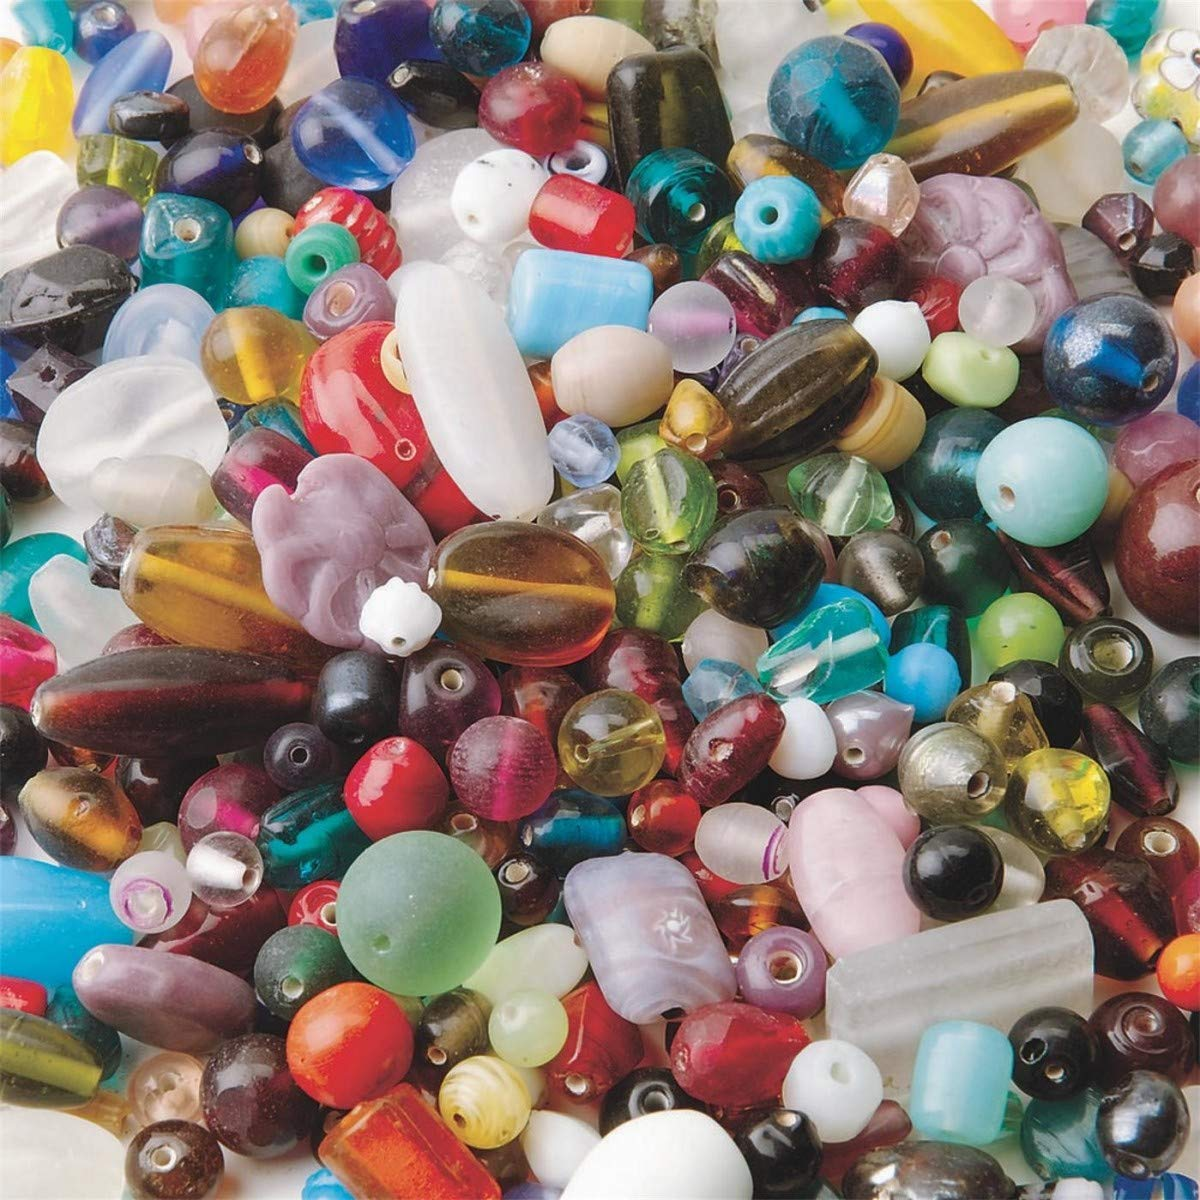 Darice 1 lb Glass Beads - Assorted Shapes, Colors and Sizes - Big Value 0726-70